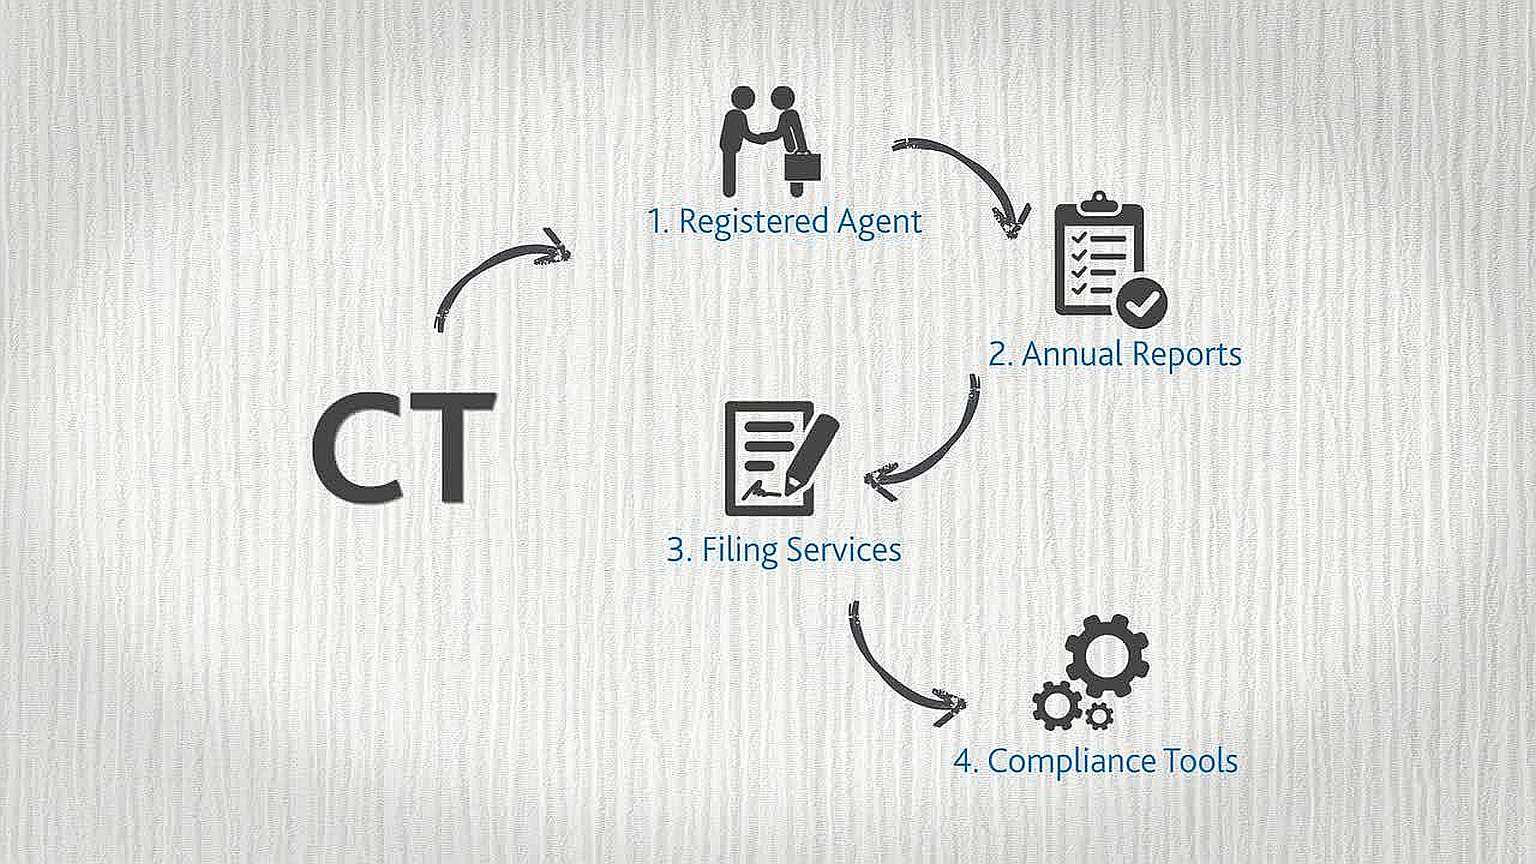 CT Assurance provides scalable support throughout the lifecycle of your business.